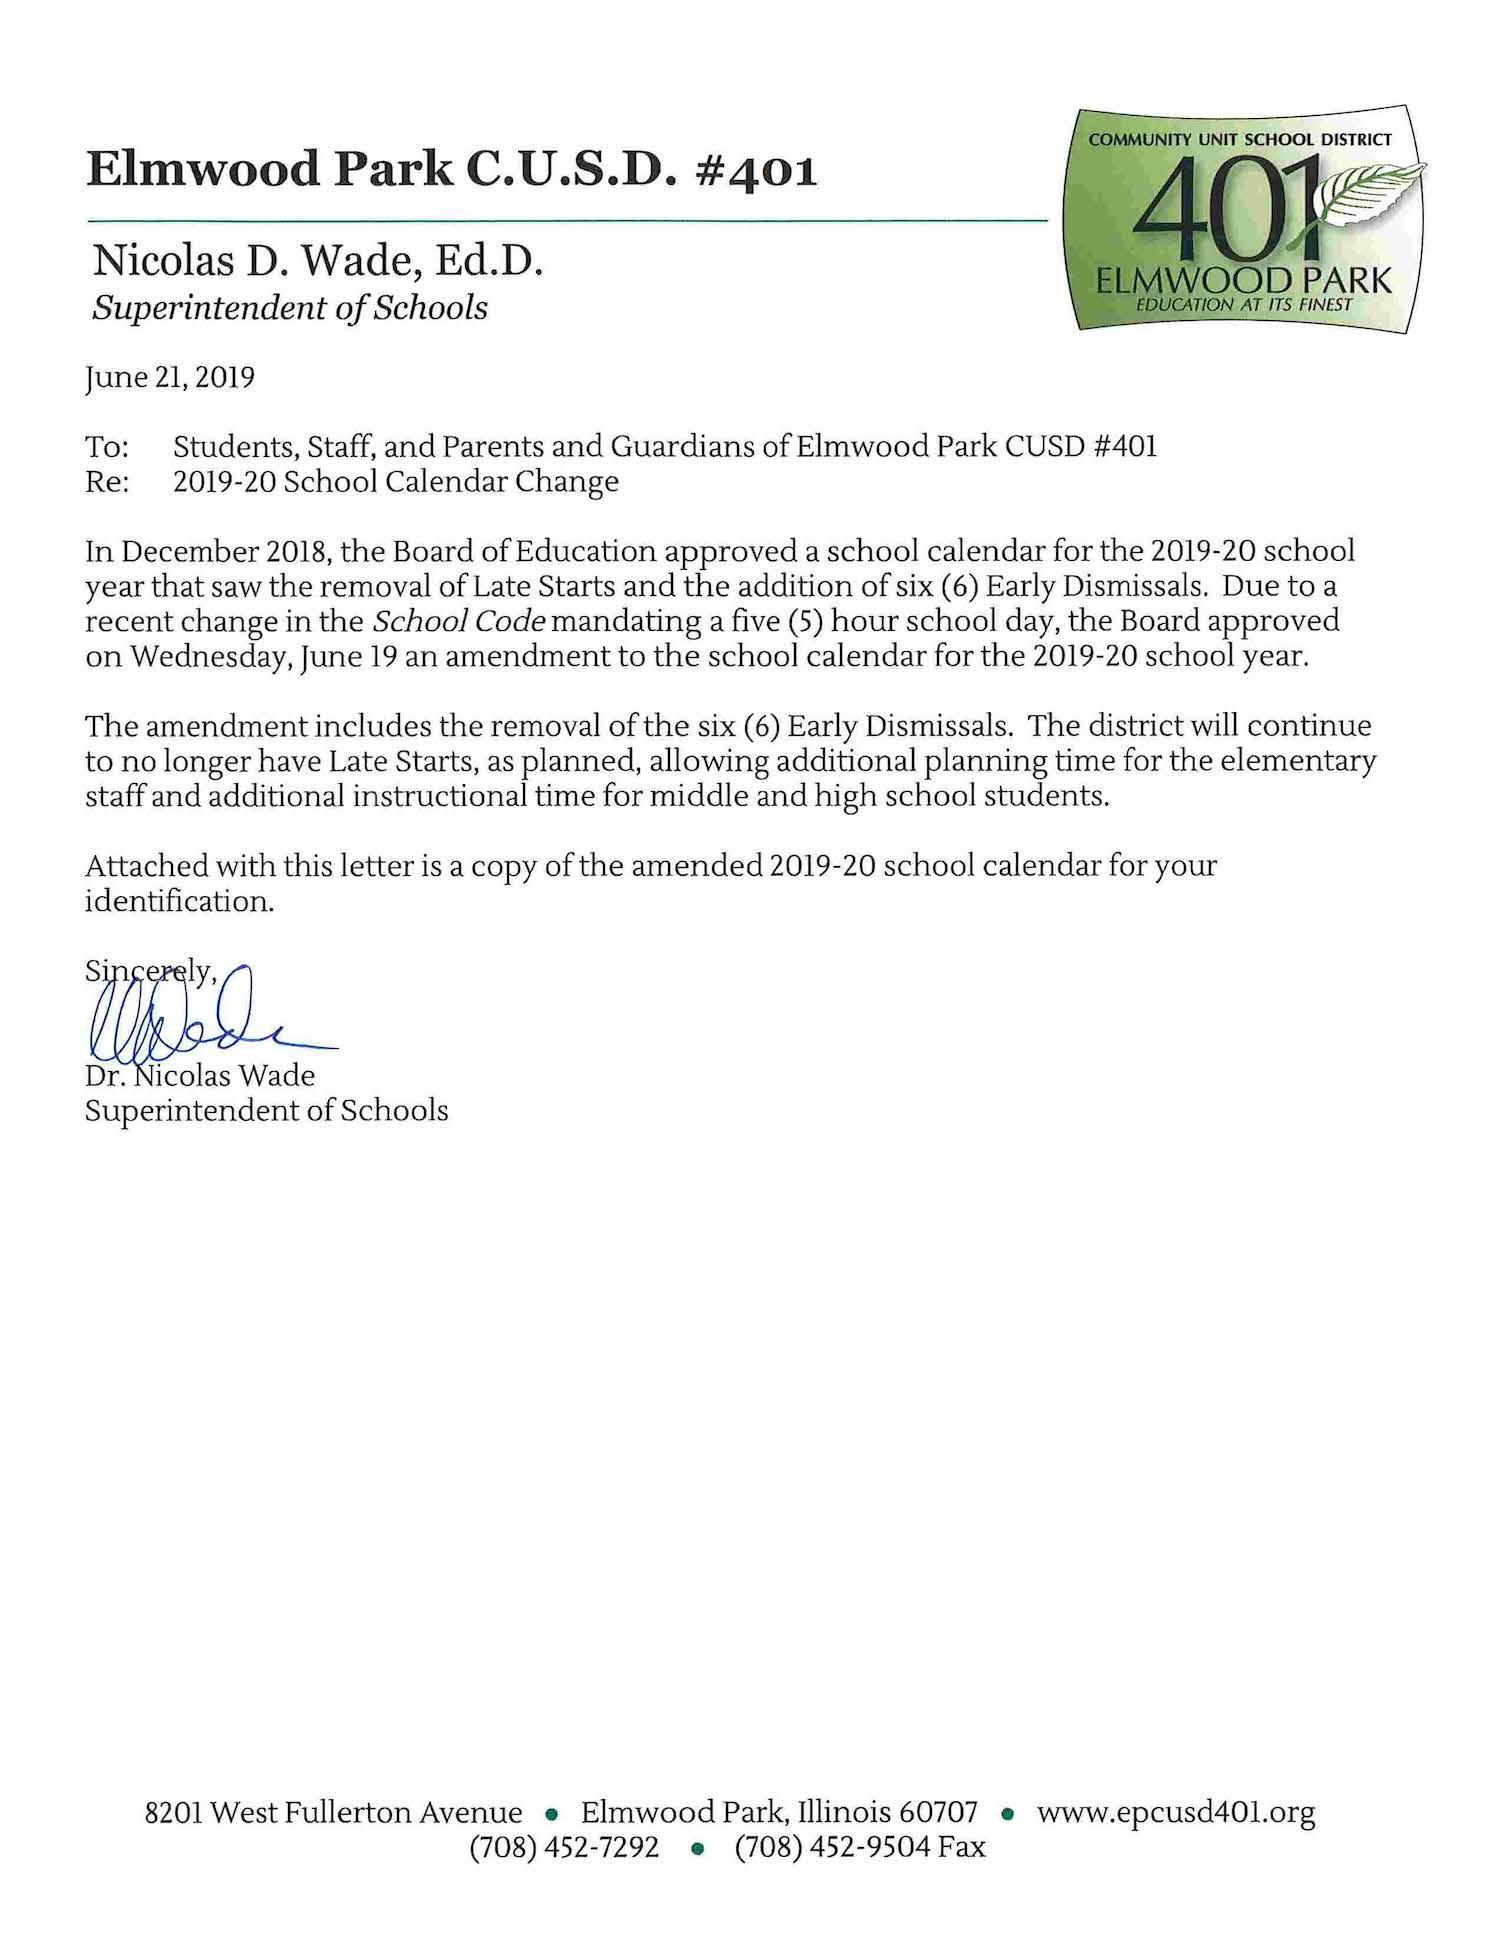 Letter from Dr. Wade about 2019-20 calendar changes